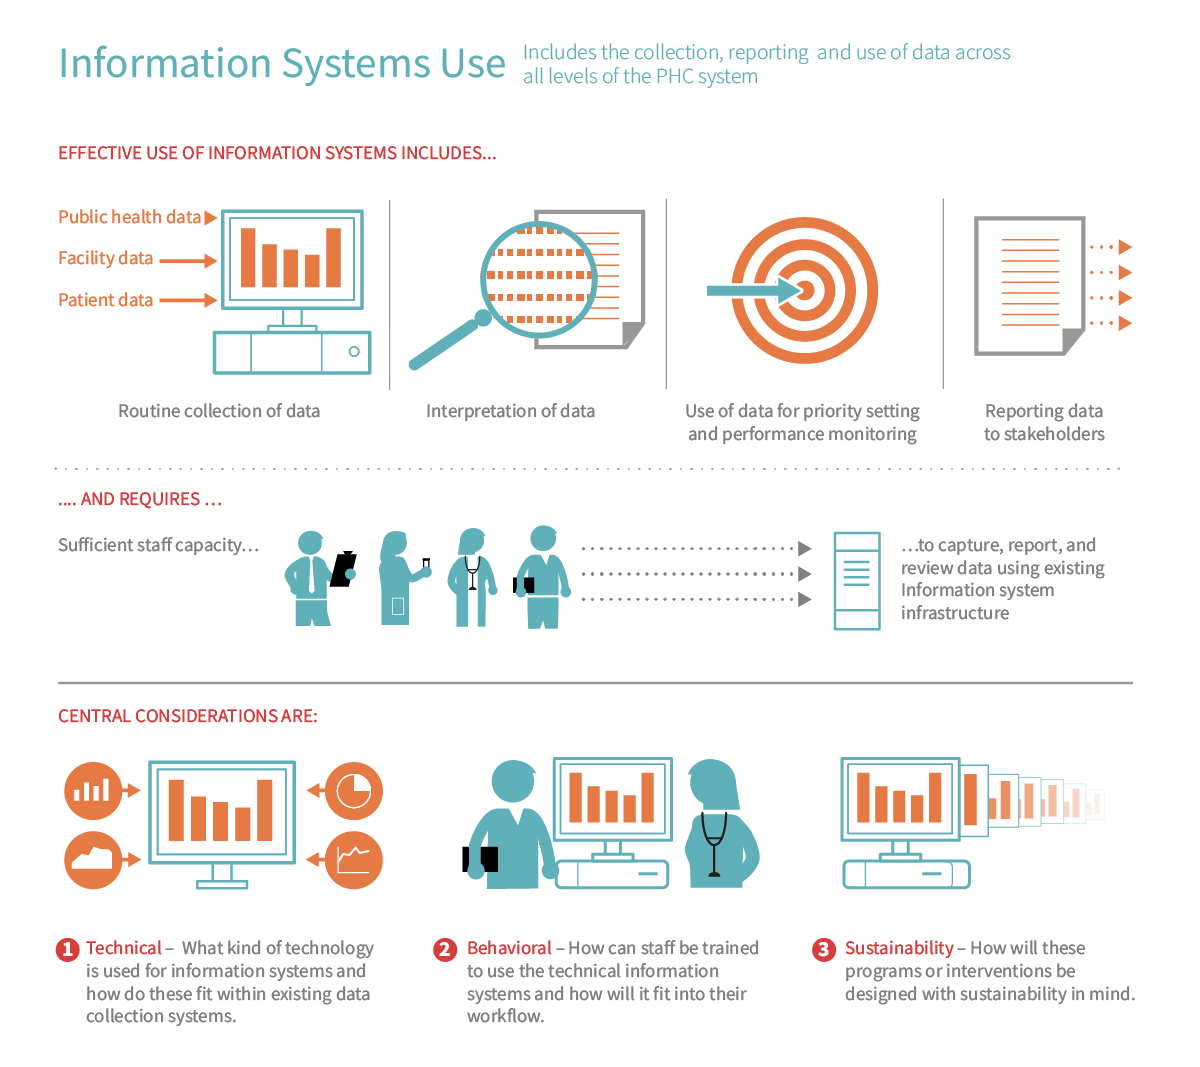 Information Systems Use   PHCPI